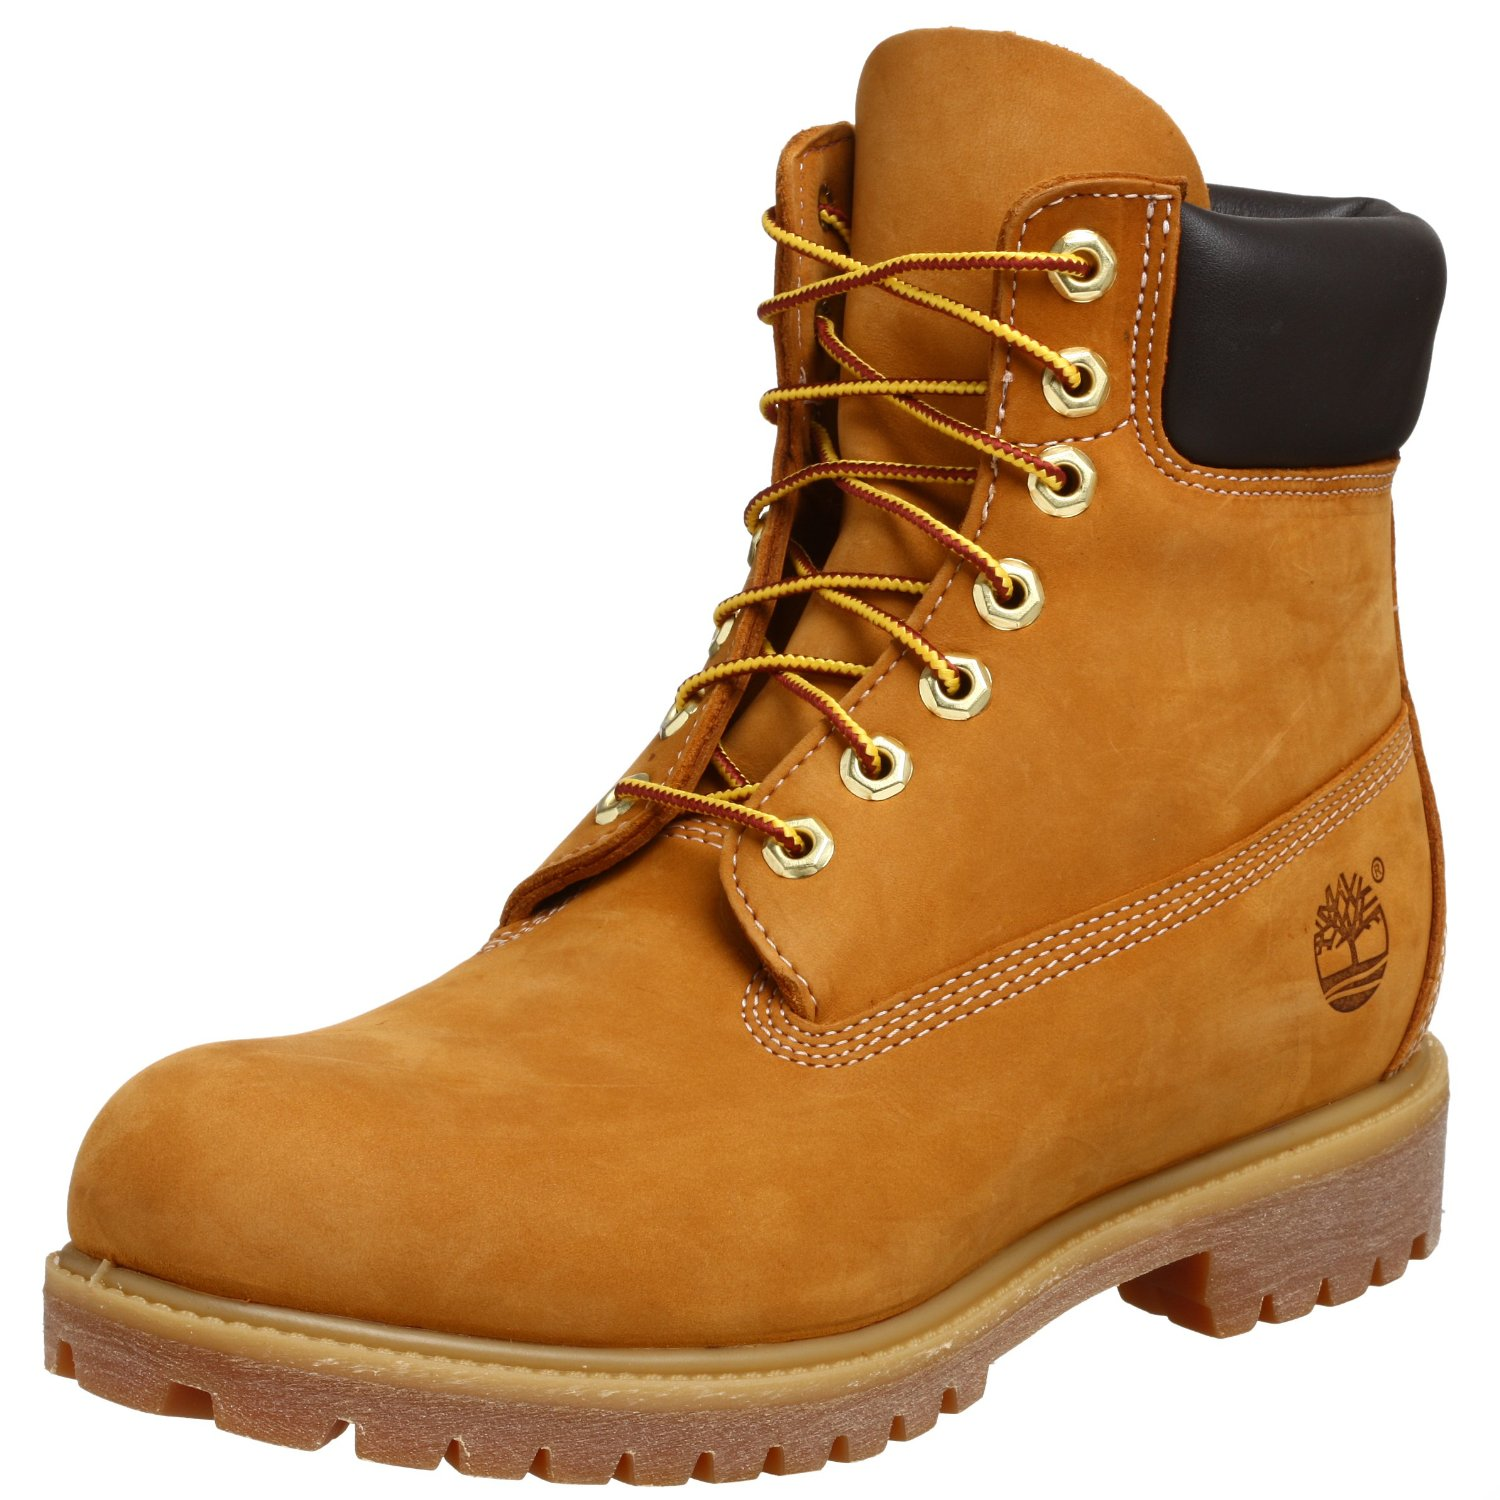 Buy Mens Timberland Boots On Sale: November 2010